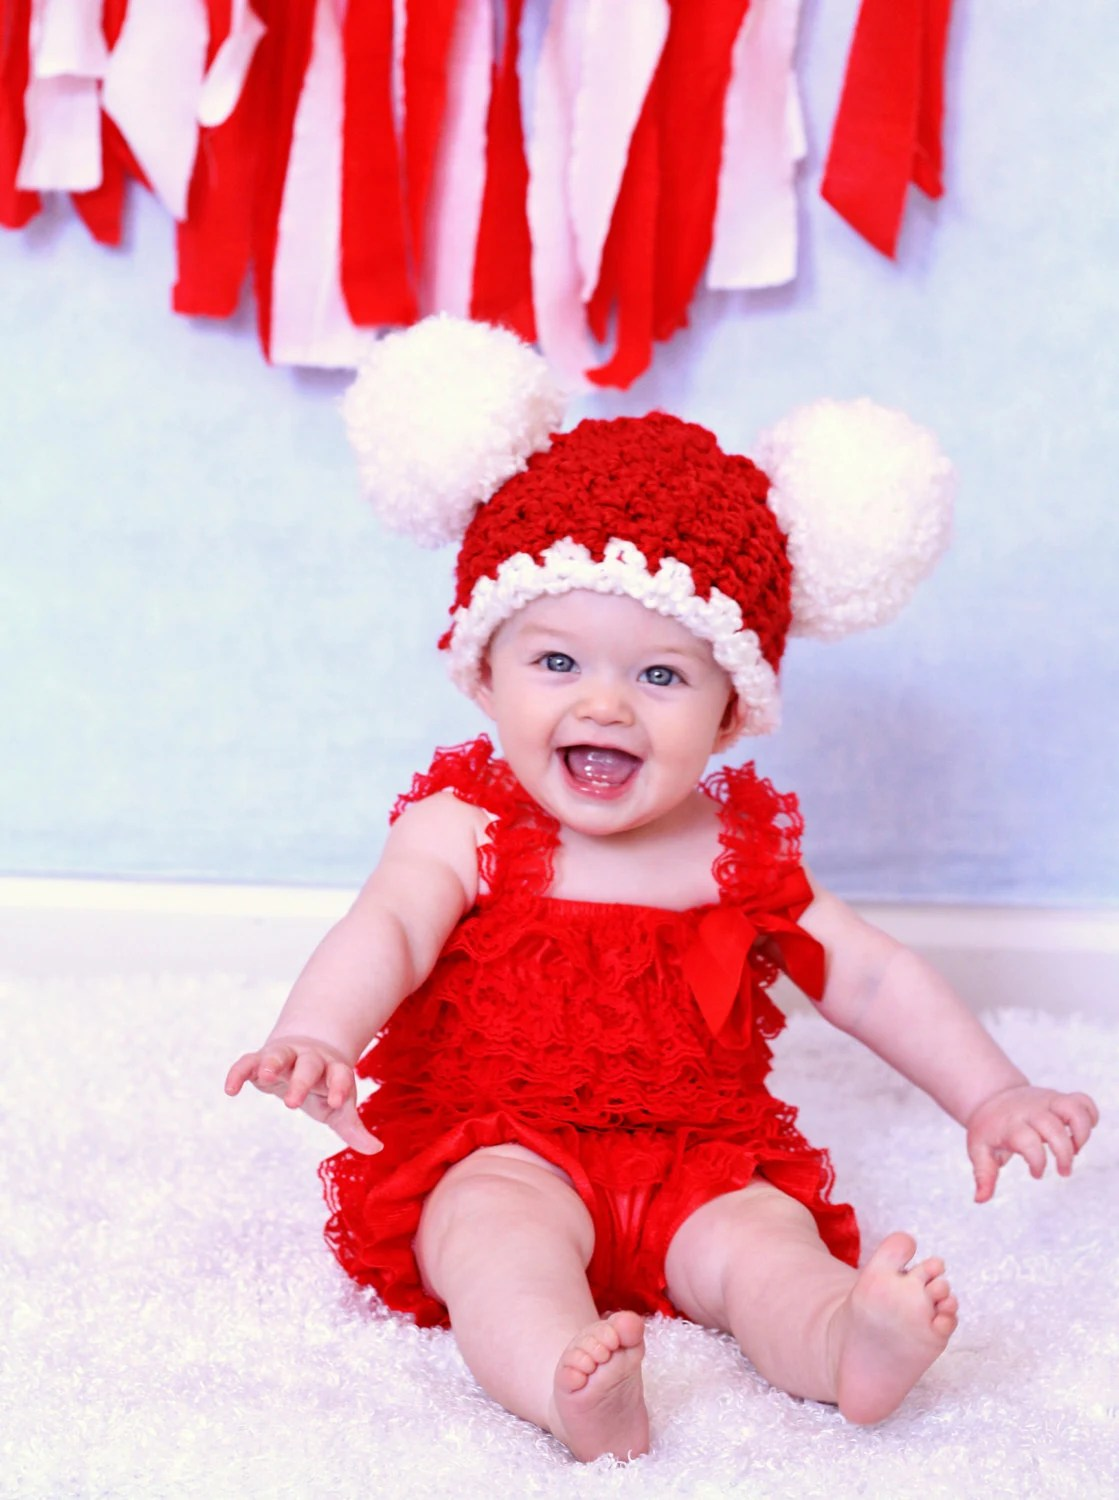 Cute Newborn Baby Girl Wallpapers Christmas Baby Hat 6 To 9 Month Baby Santa Hat Baby Girl Hat